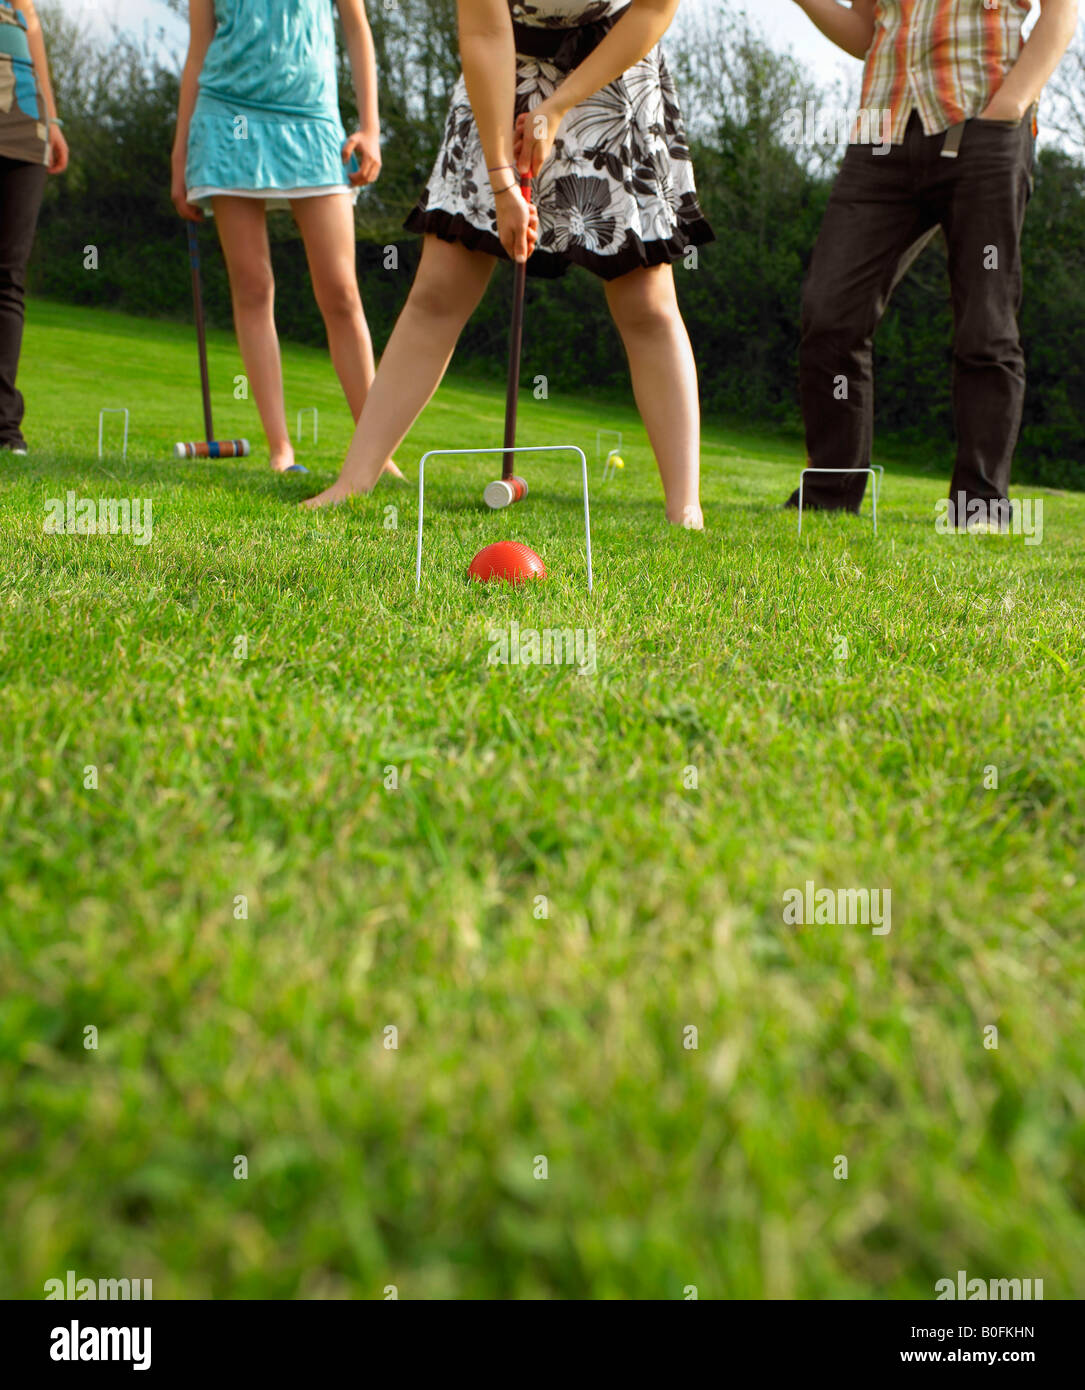 Man and women playing croquet in garden - Stock Image